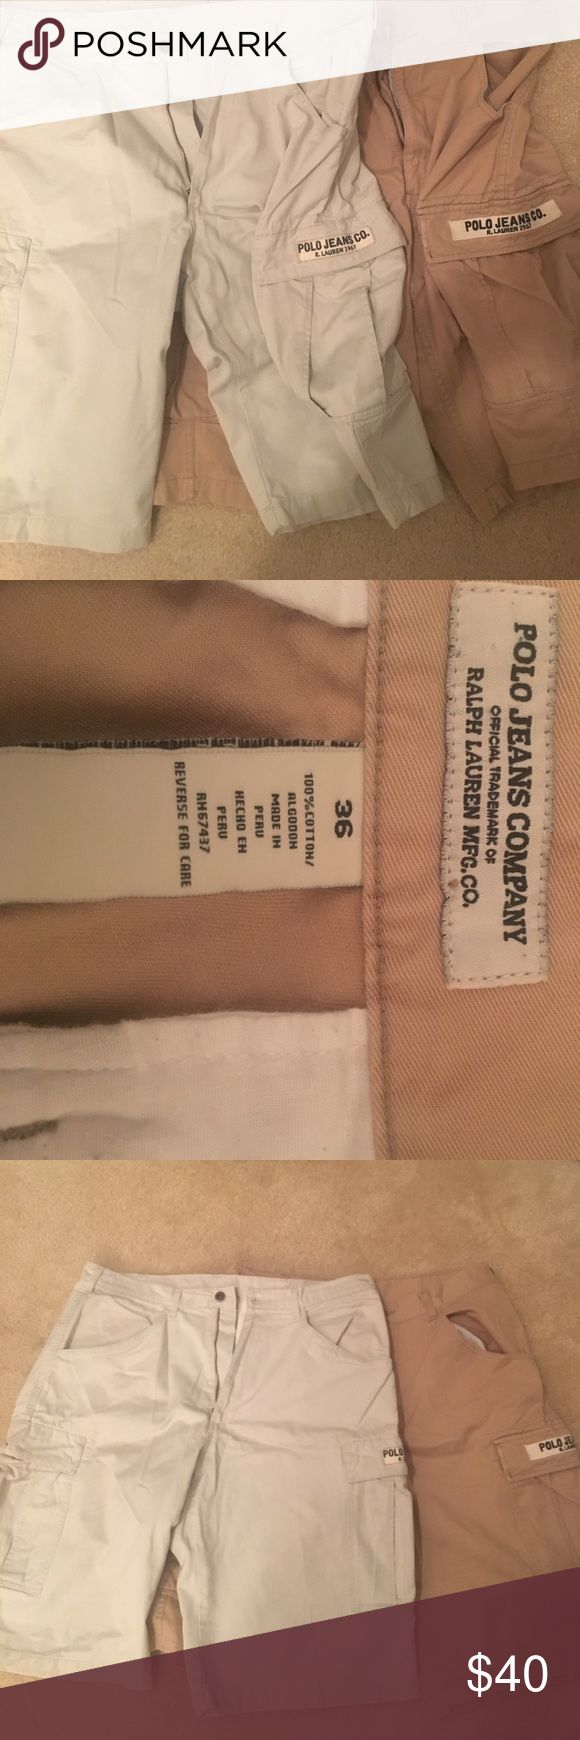 Polo Jeans Company Cargo Short Ralph Lauren Polo Cargo Shorts. Size 36 for both. Dark and light khaki colored. Sold as a pair! Polo by Ralph Lauren Shorts Cargo